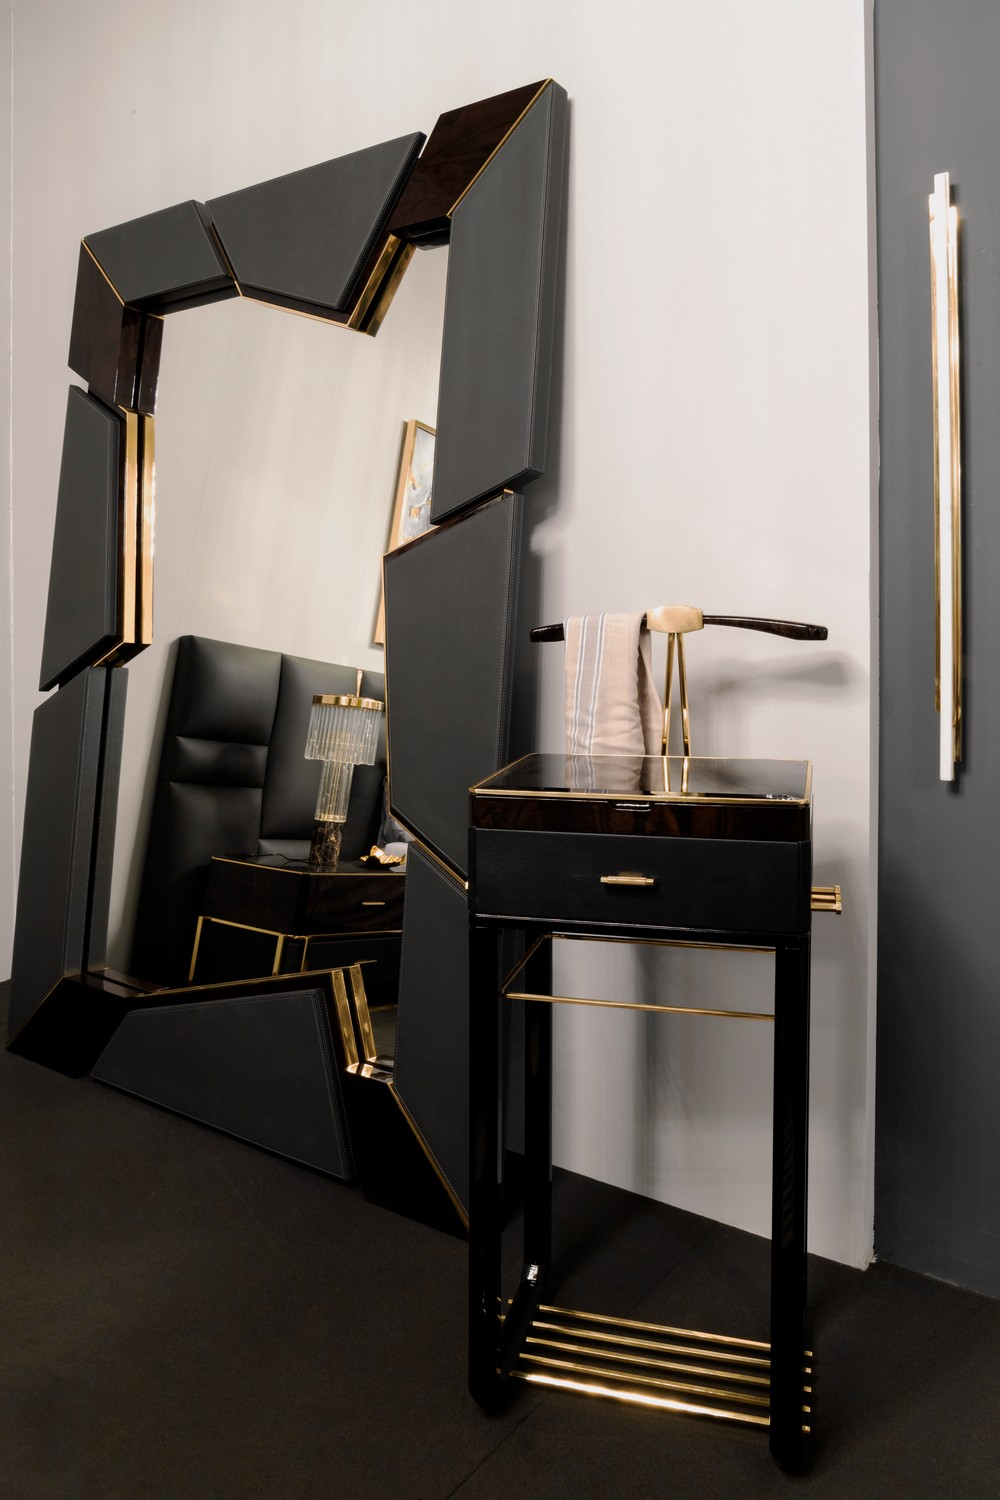 Home Decoration Ideas 10 Ostentatious Mirrors for a Unique Aesthetic 13 home decoration ideas Home Decoration Ideas: 10 Ostentatious Mirrors for a Unique Aesthetic Home Decoration Ideas 10 Ostentatious Mirrors for a Unique Aesthetic 13